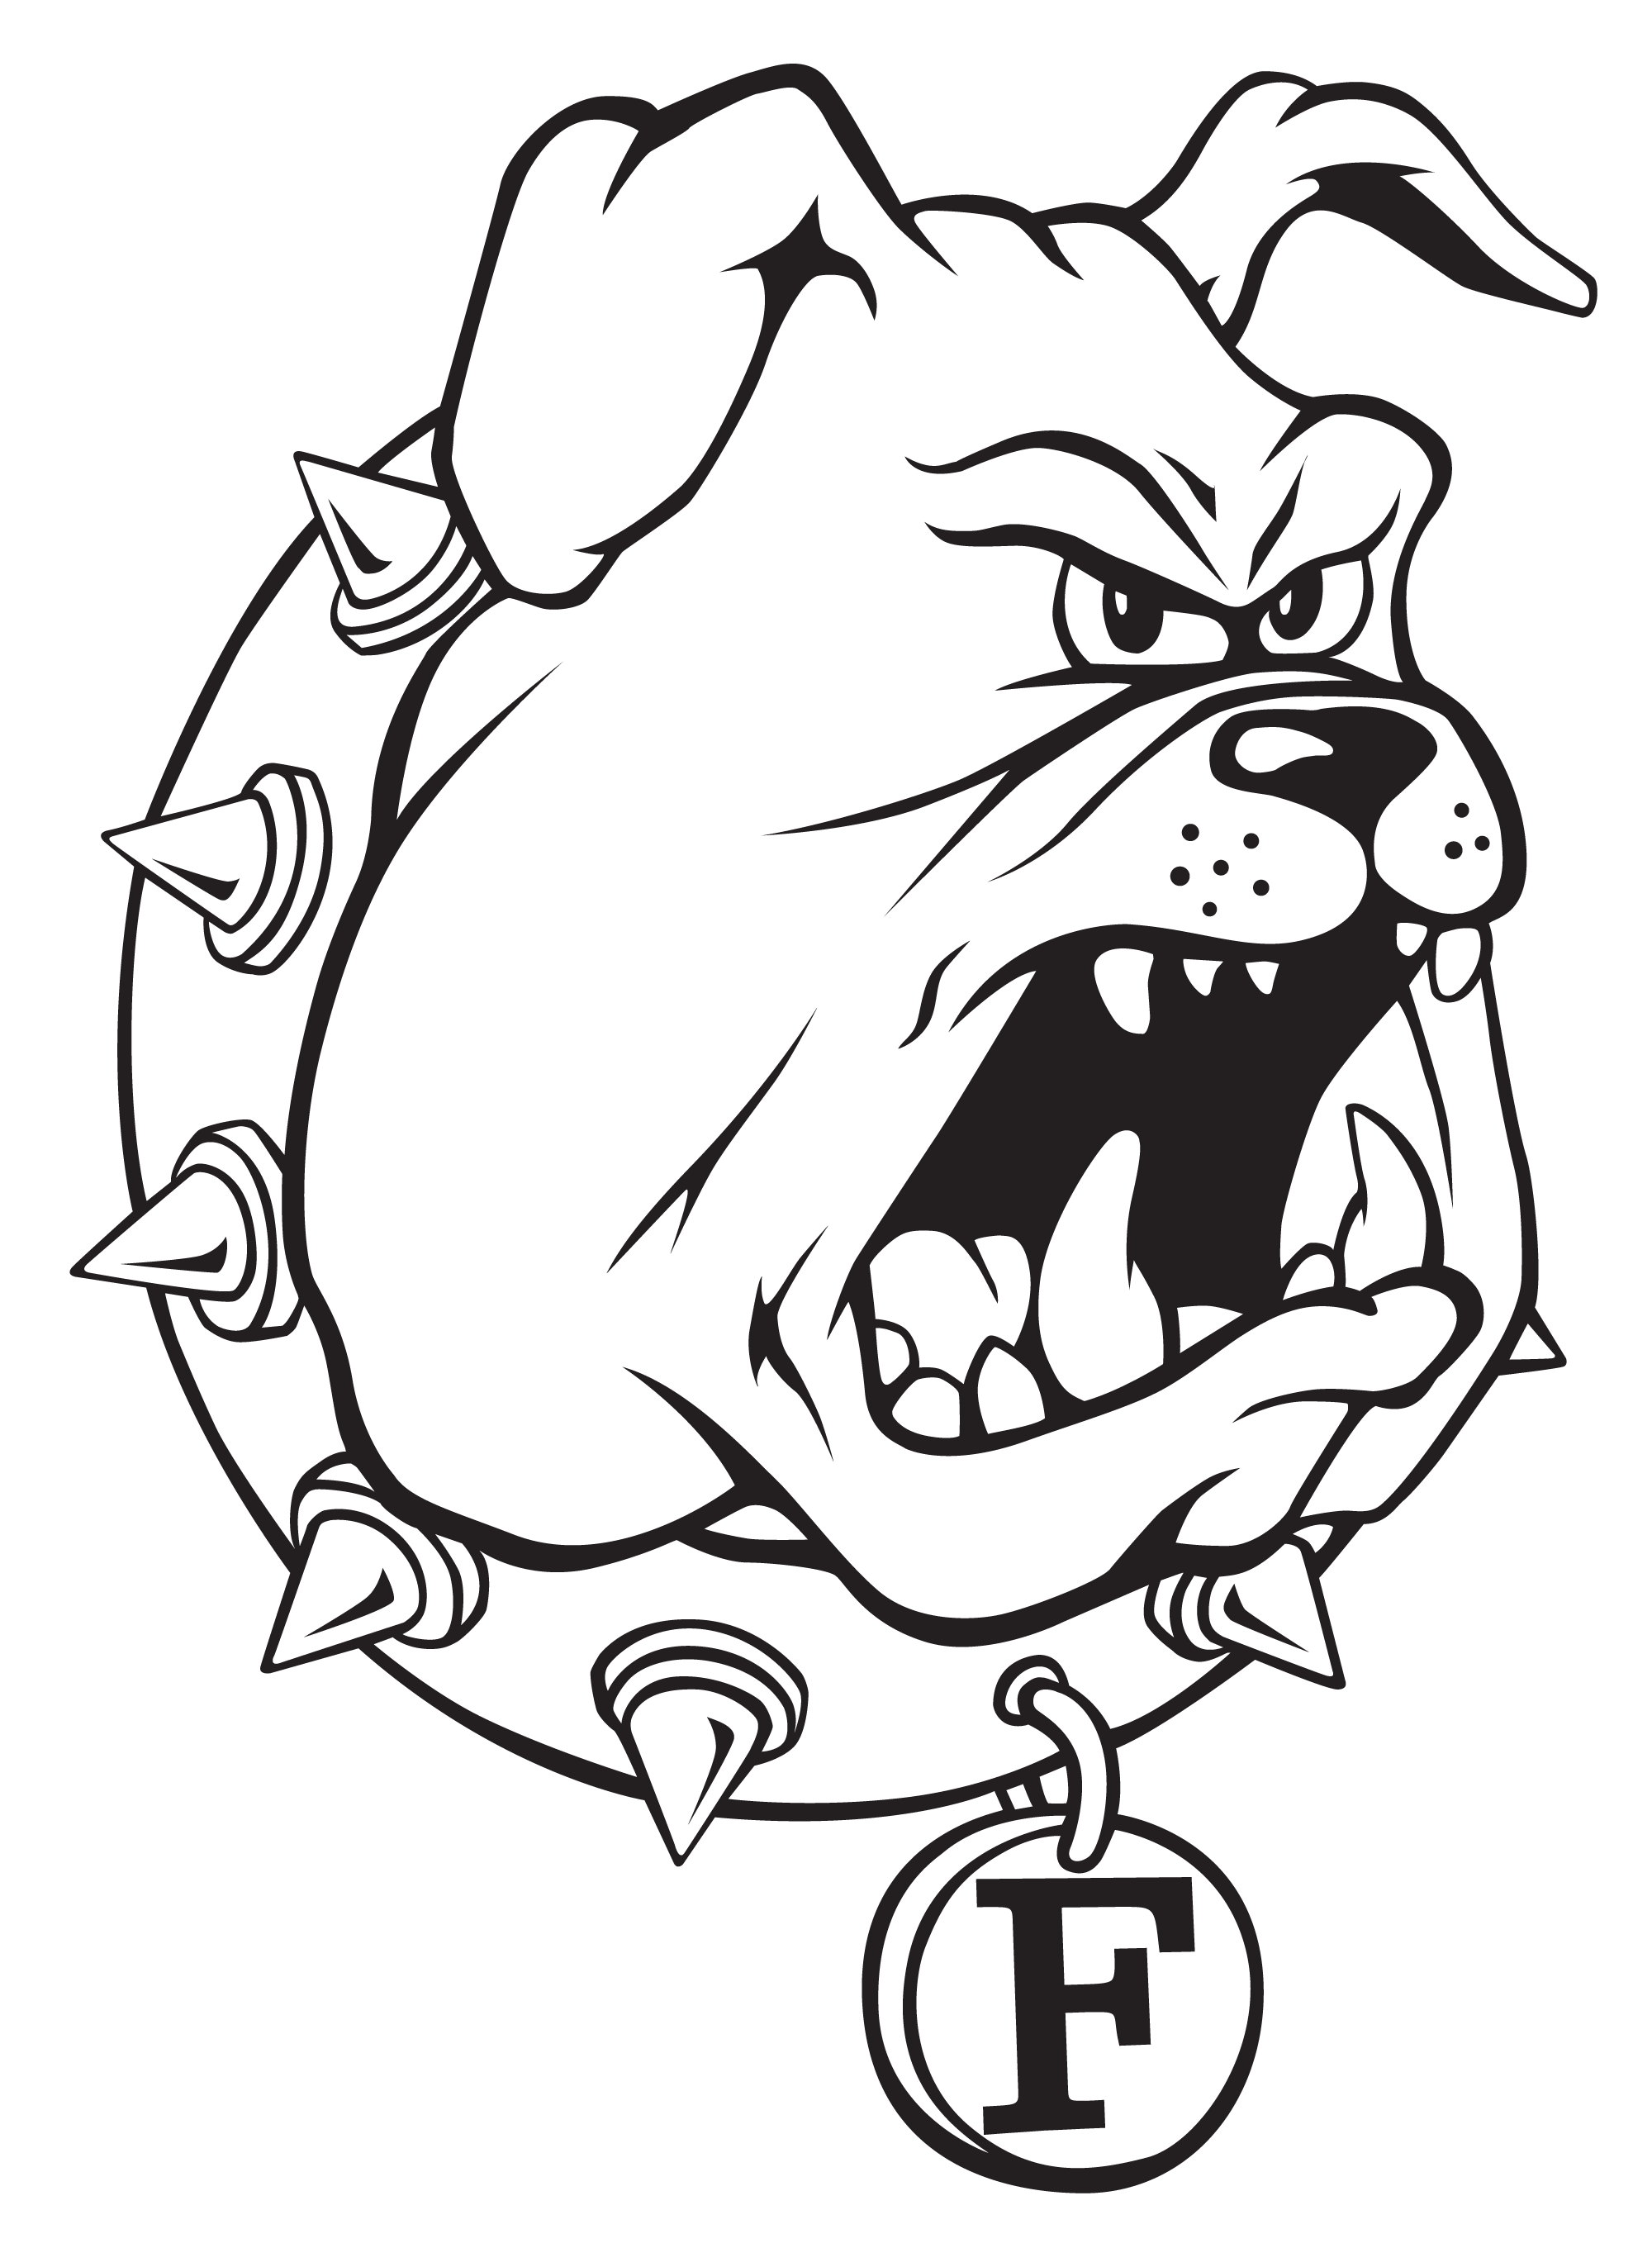 Bulldog clipart black and white basketball png transparent download Logos - Ferris State University png transparent download